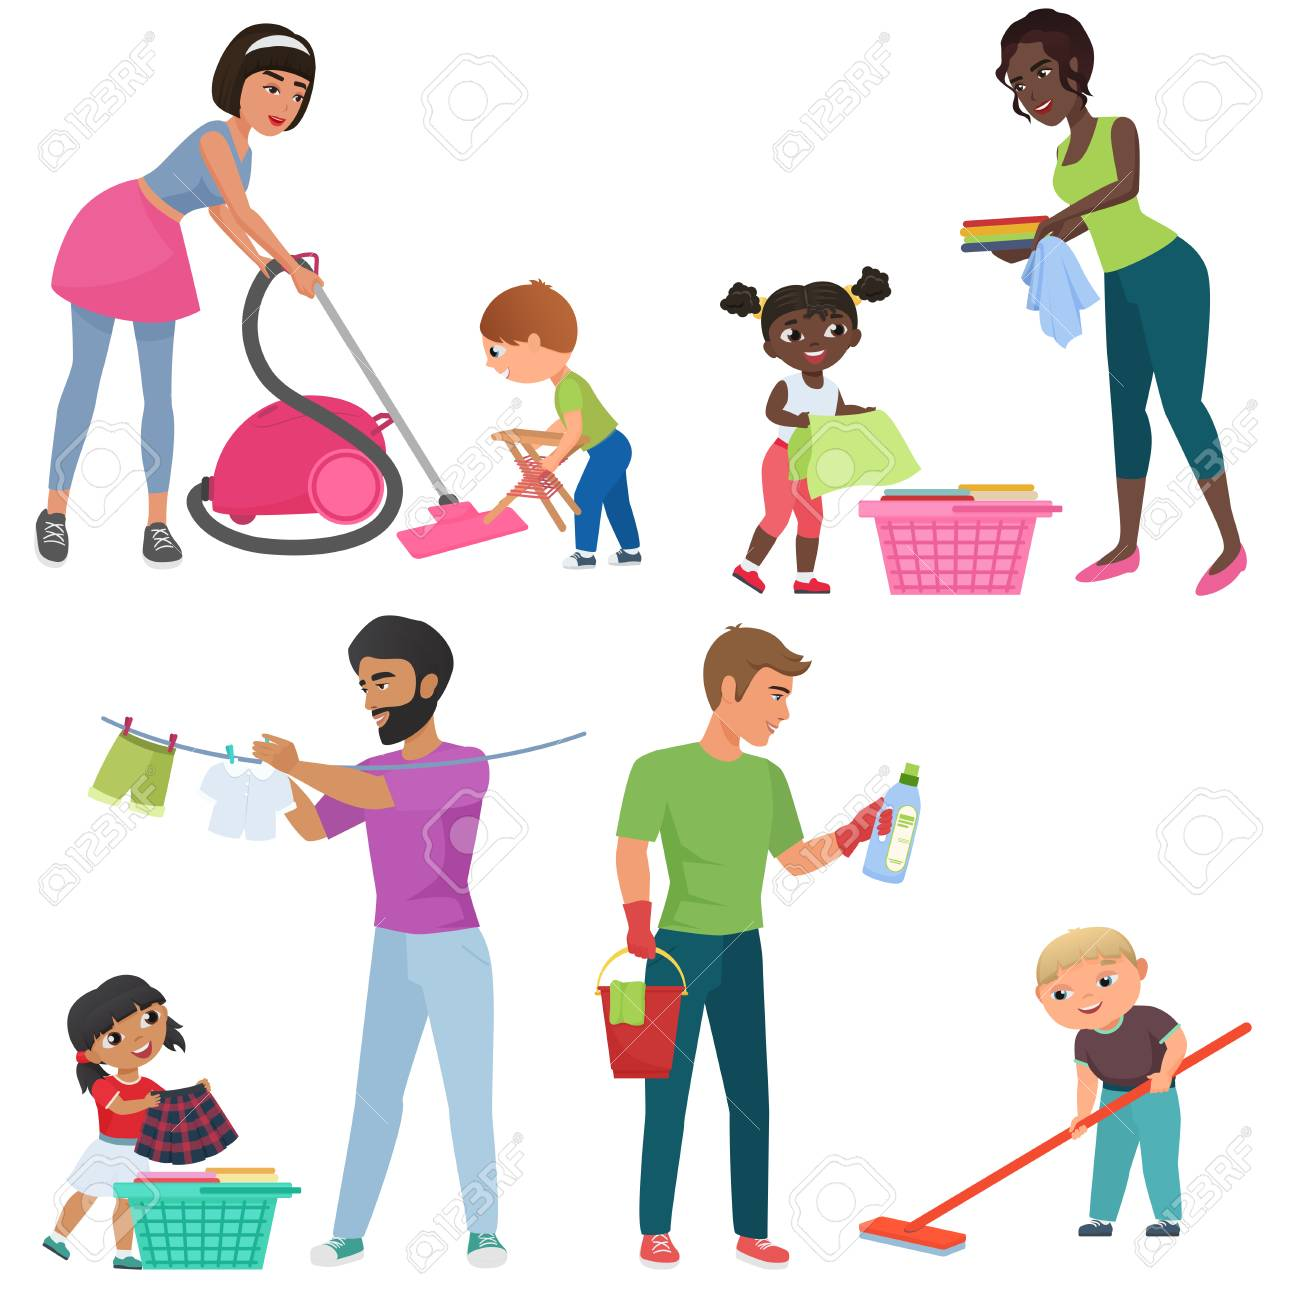 adults and kids cleaning together. children helping their parents